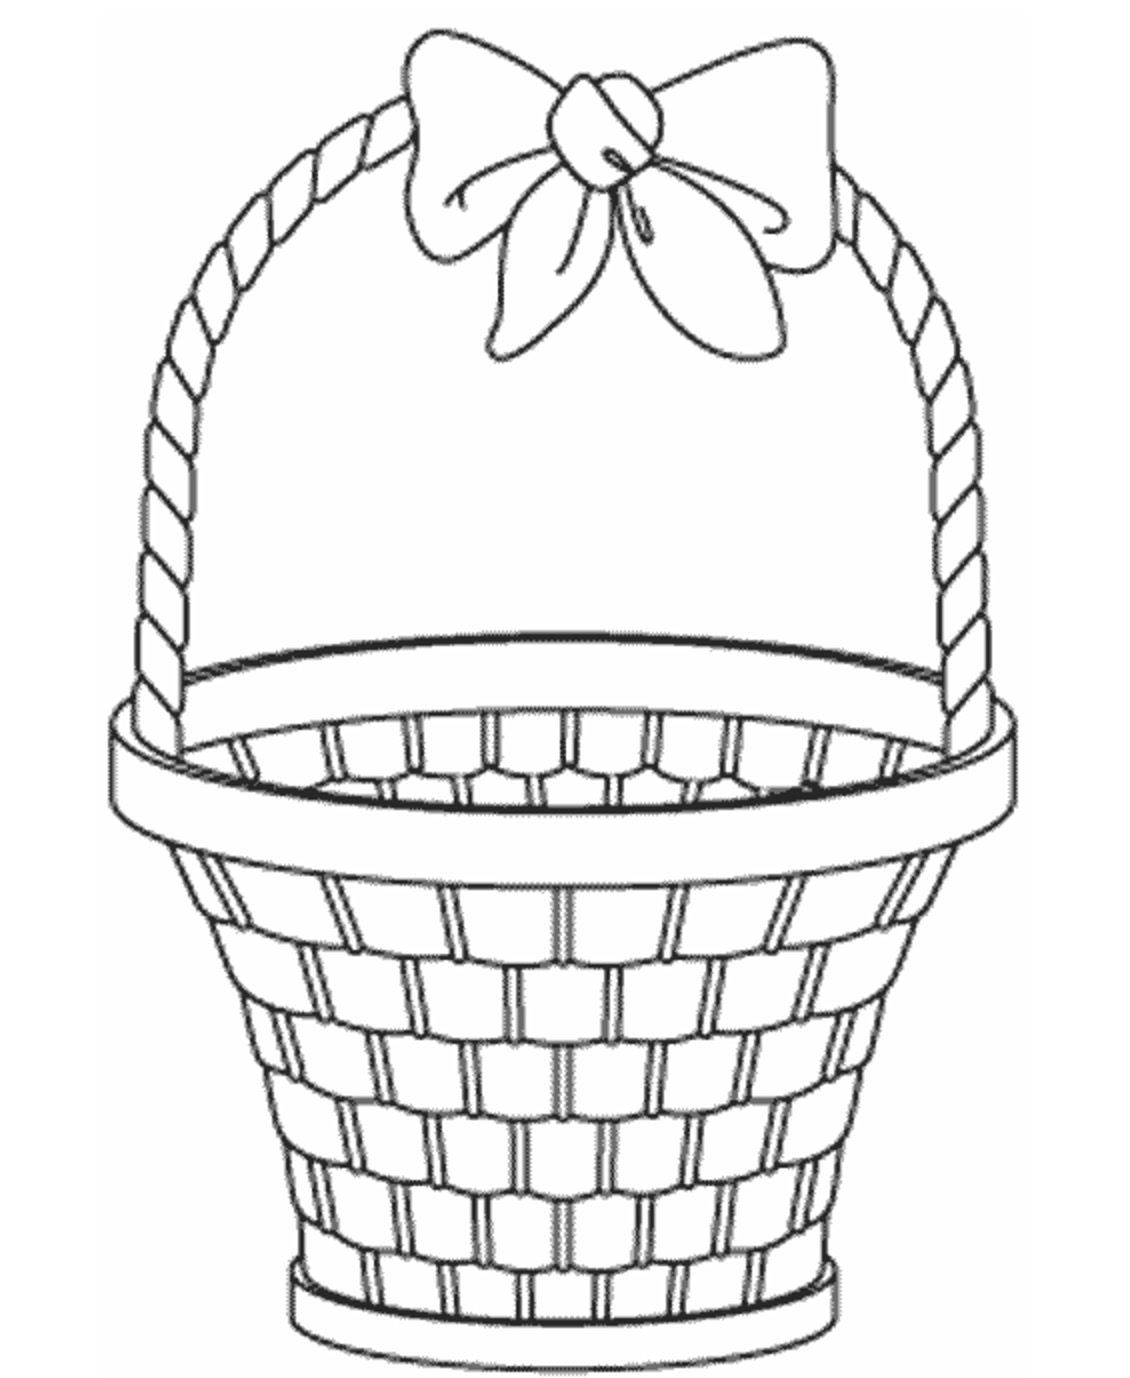 Empty Easter Basket Coloring Page Book For Kids